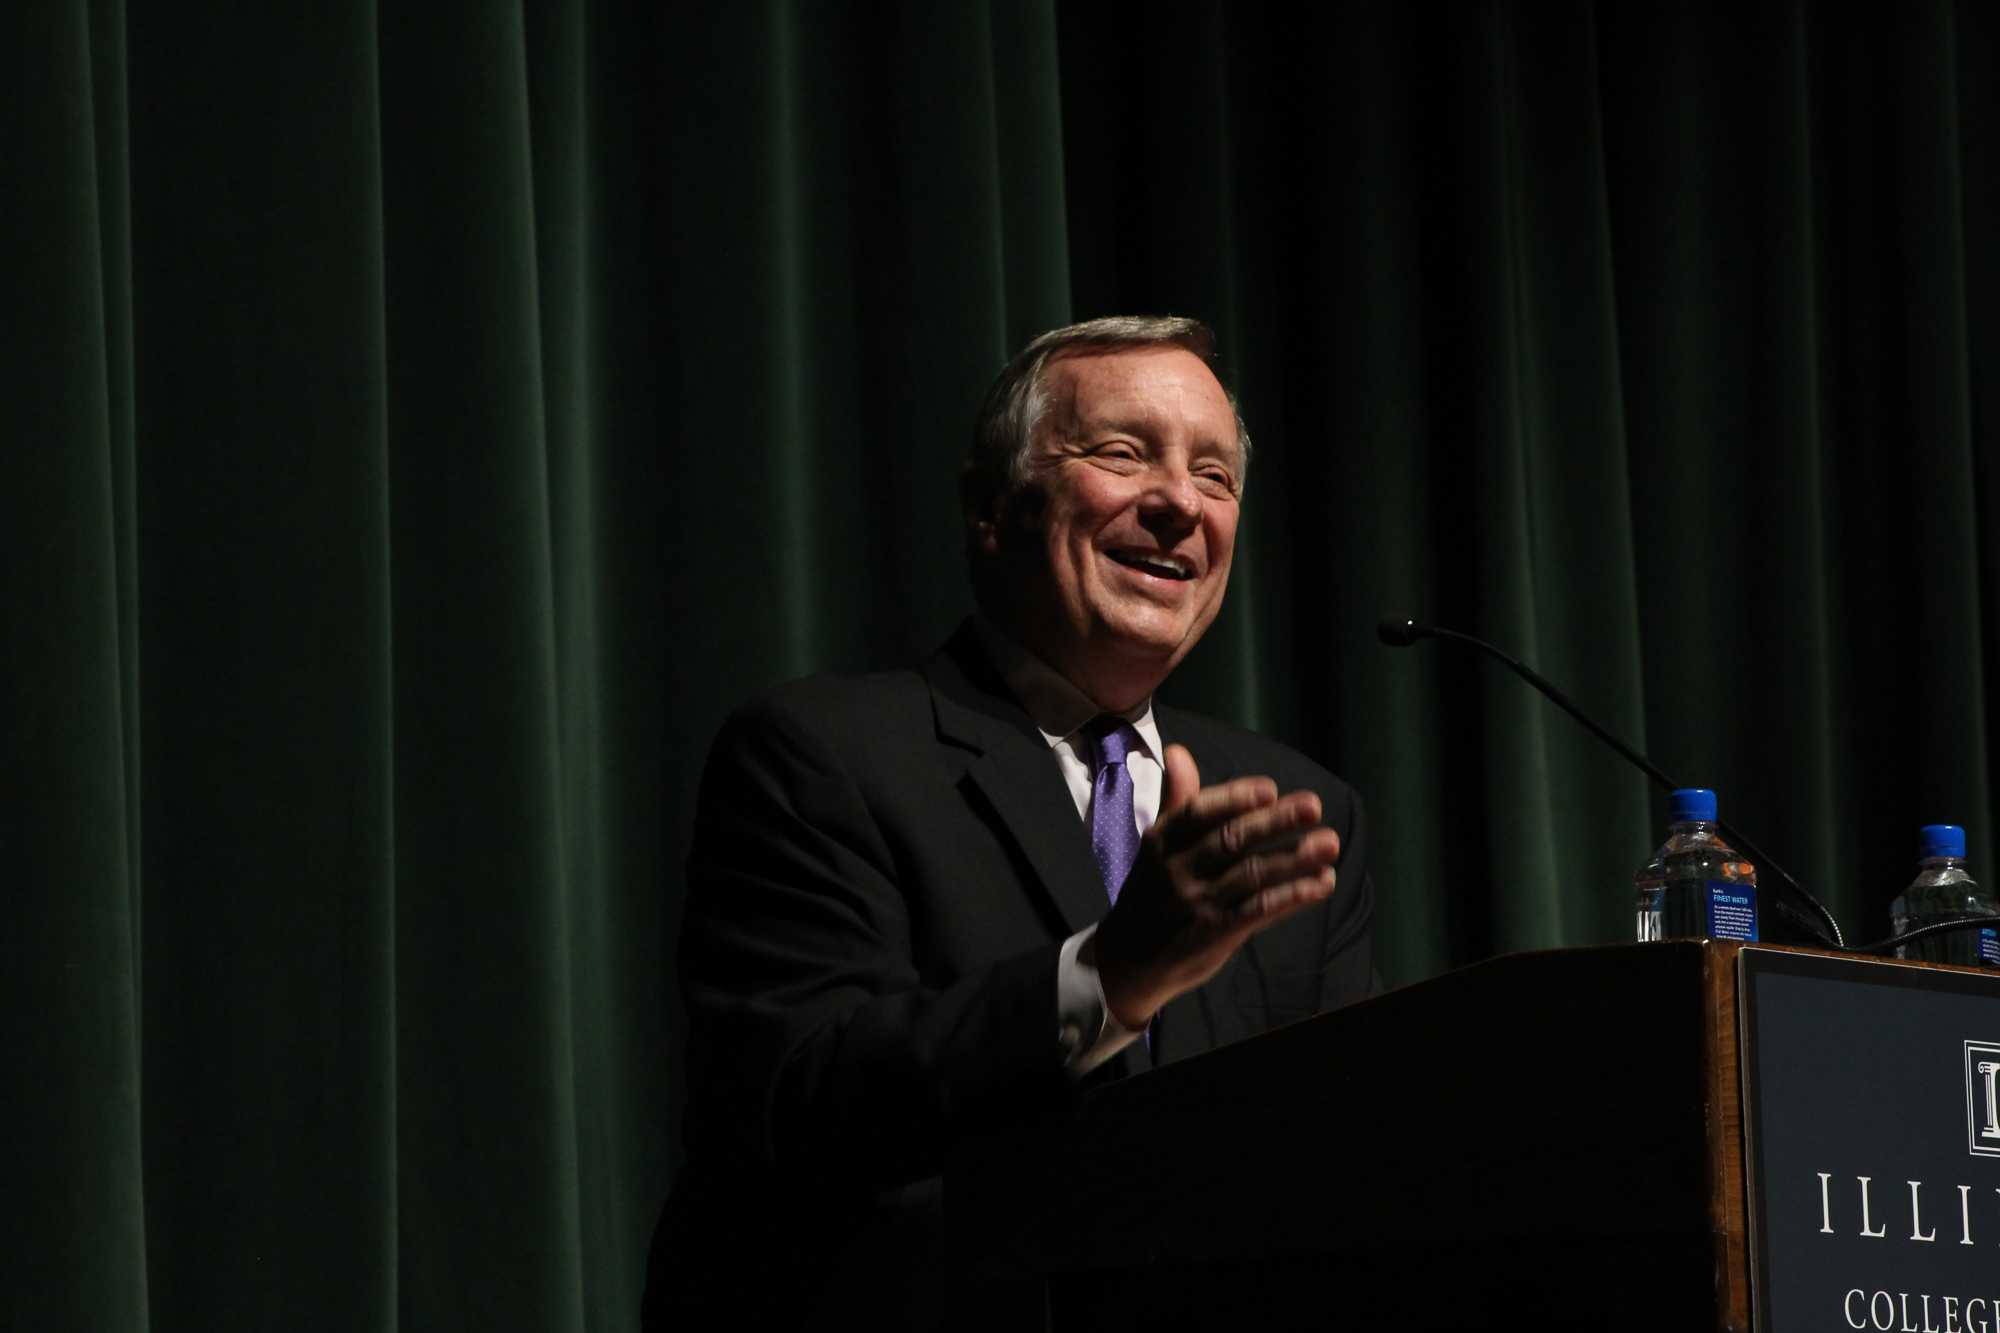 Senator Dick Durbin visits the University of Illinois at Urbana- Champaign on Monday, October 17, 2016.